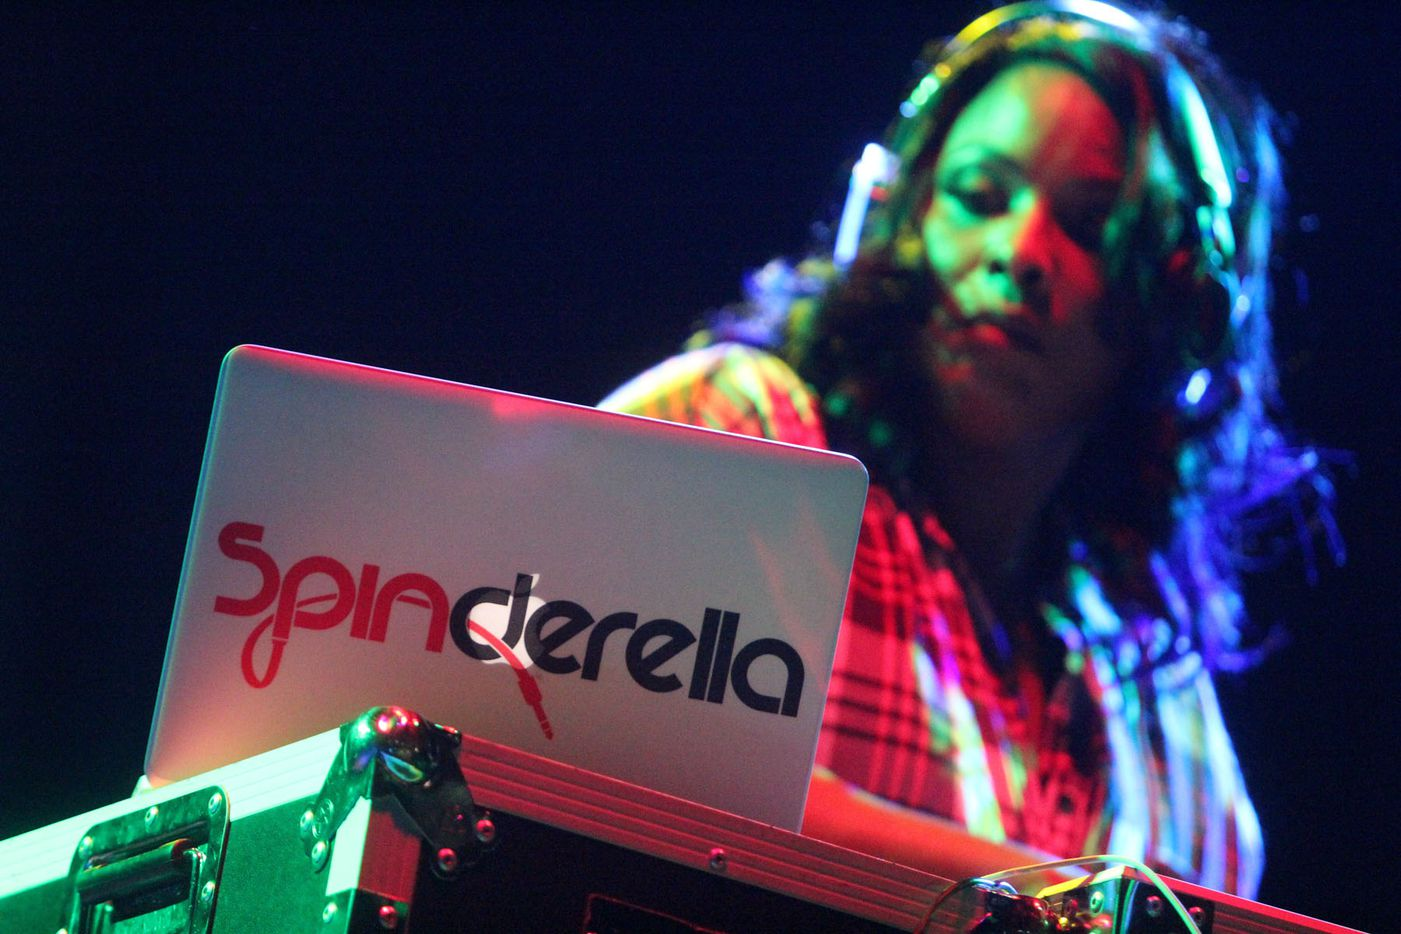 DJ Spinderella headlined the Pin Drop Disco event on Saturday at Strauss Square in downtown Dallas.